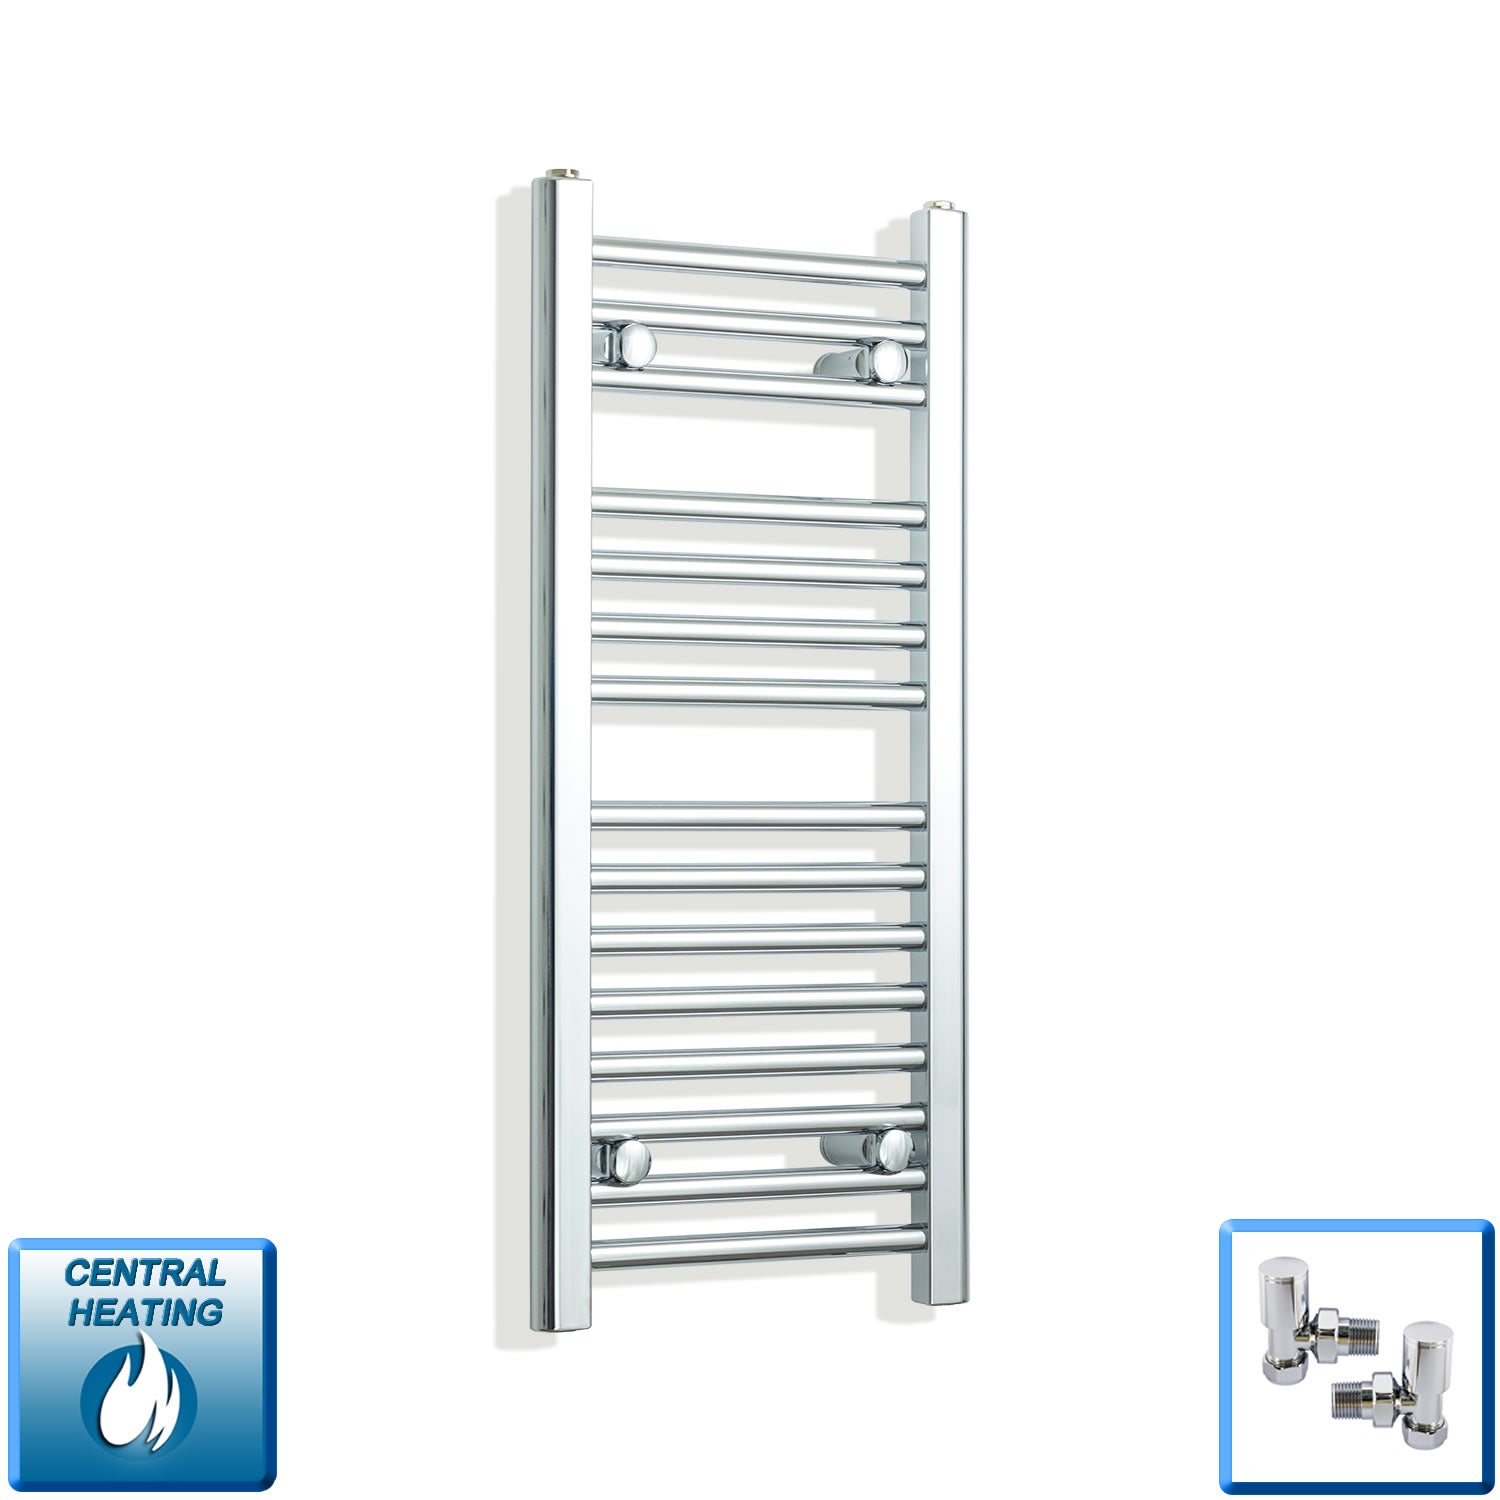 350mm Wide 800mm High Chrome Towel Rail Radiator With Angled Valve